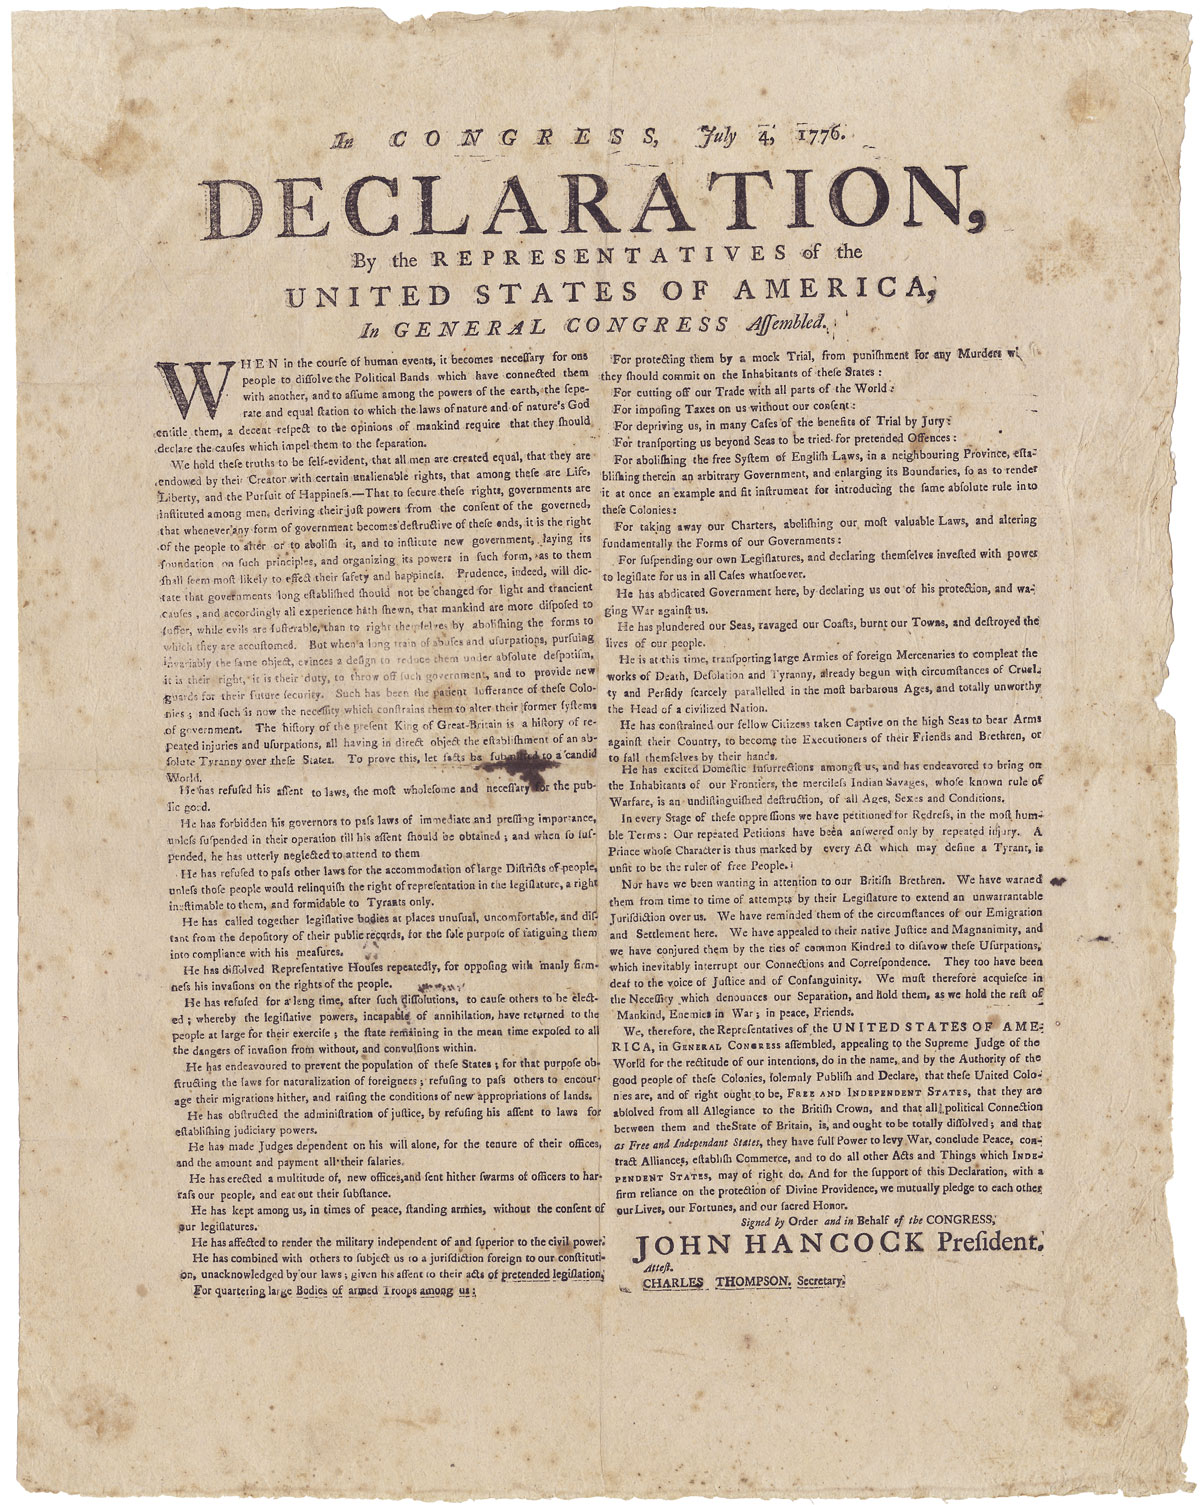 essay on value of independence The declaration of independence essay sample pamphlet template pamphlets are often a single sheet folded into thirds this creates six panels to display information.